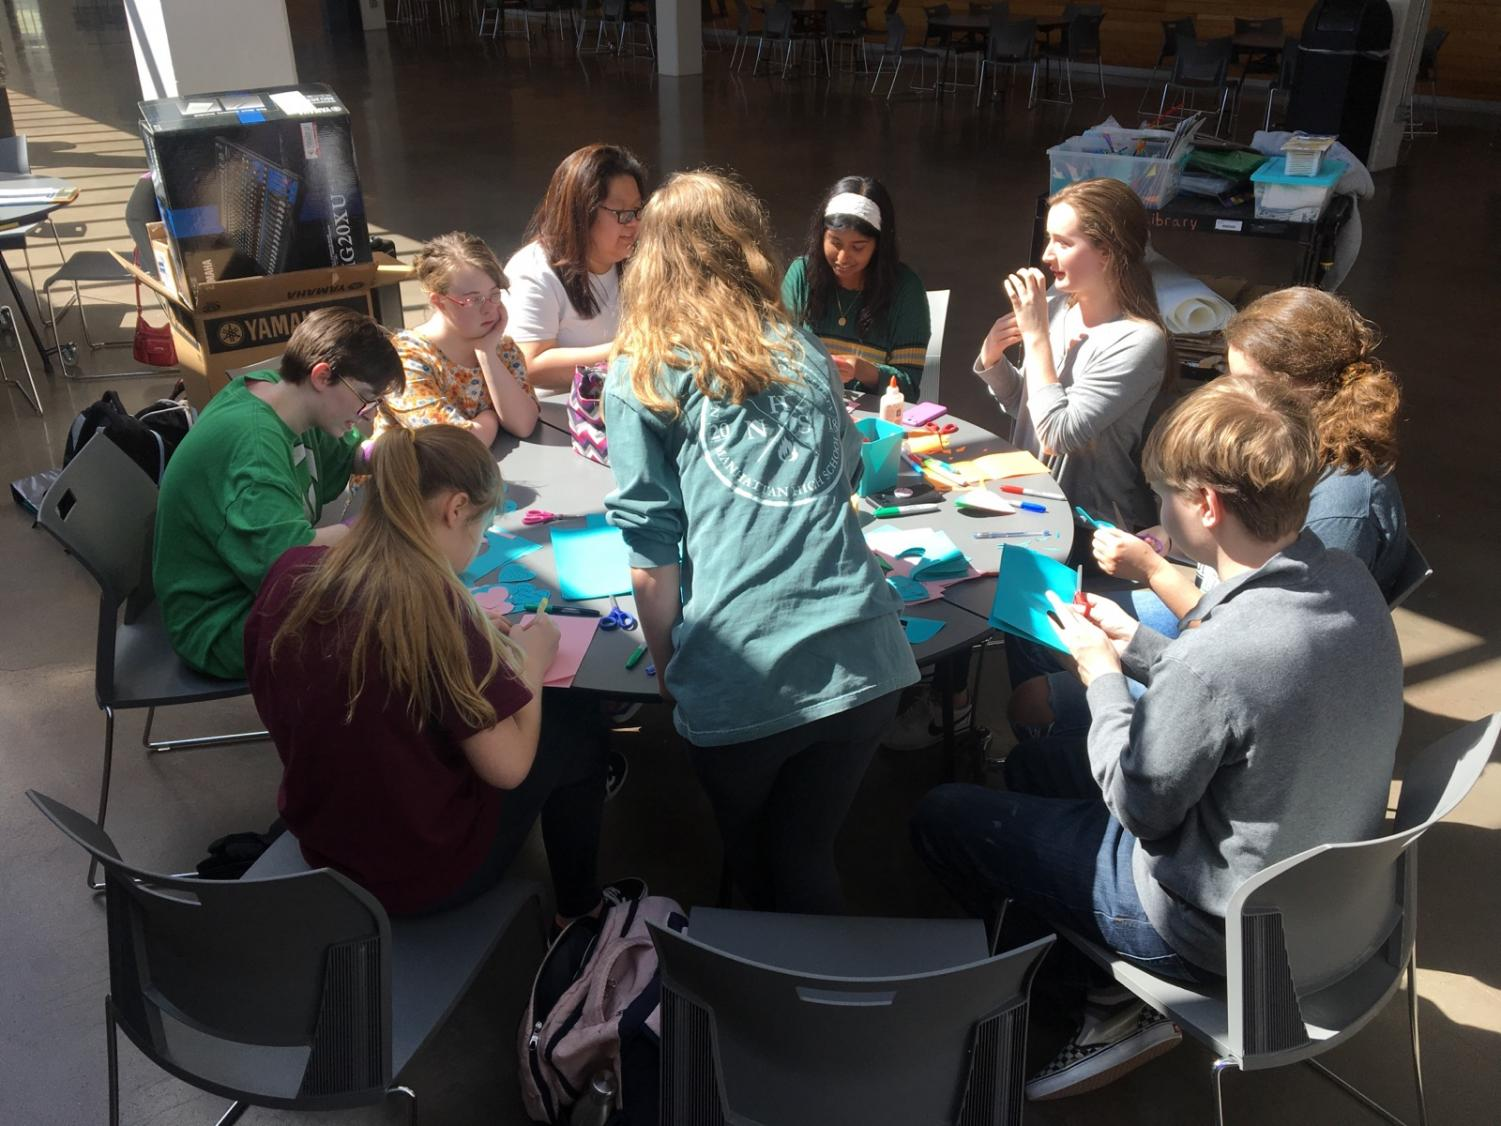 Members of the Hugs for Humanity committee paint pictures in The Commons.